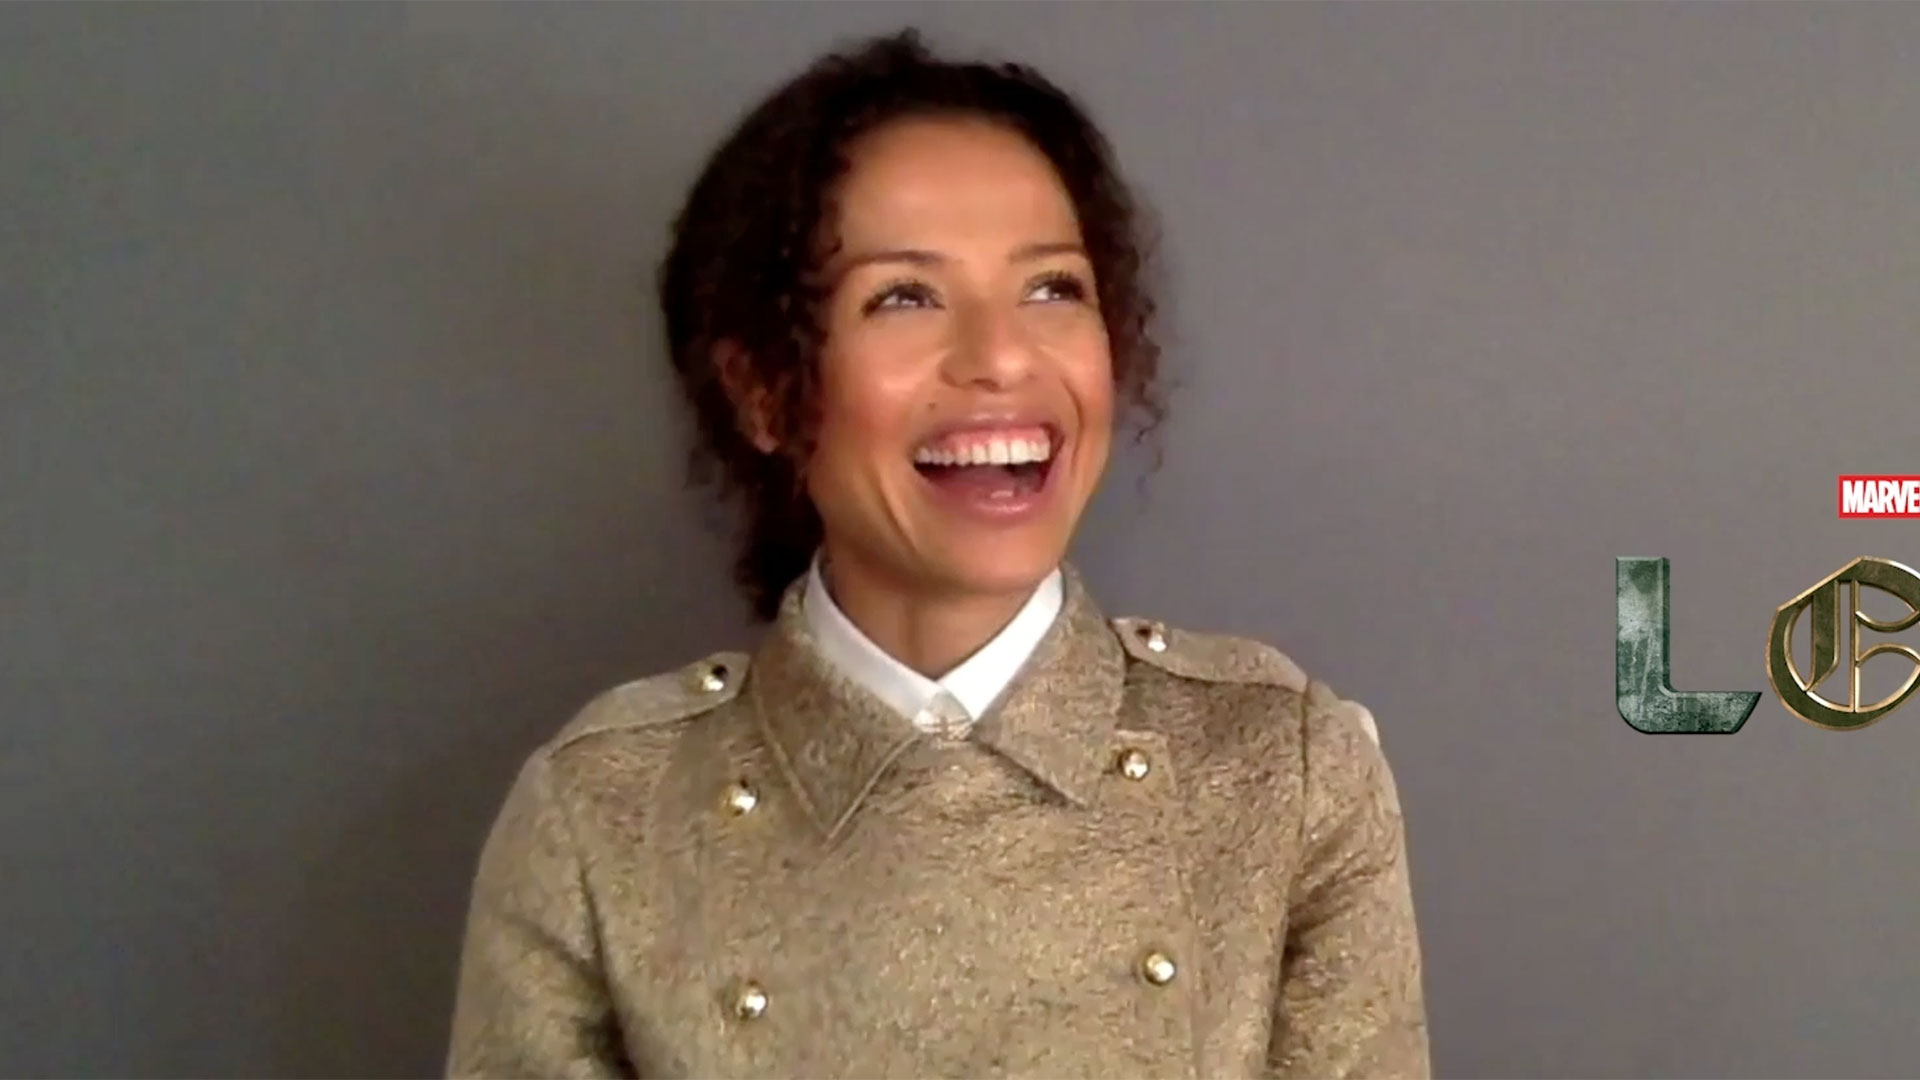 'Loki': Gugu Mbatha-Raw teases 'jaw-droppingly unexpected' moments in every episode of the Disney+ Marvel show